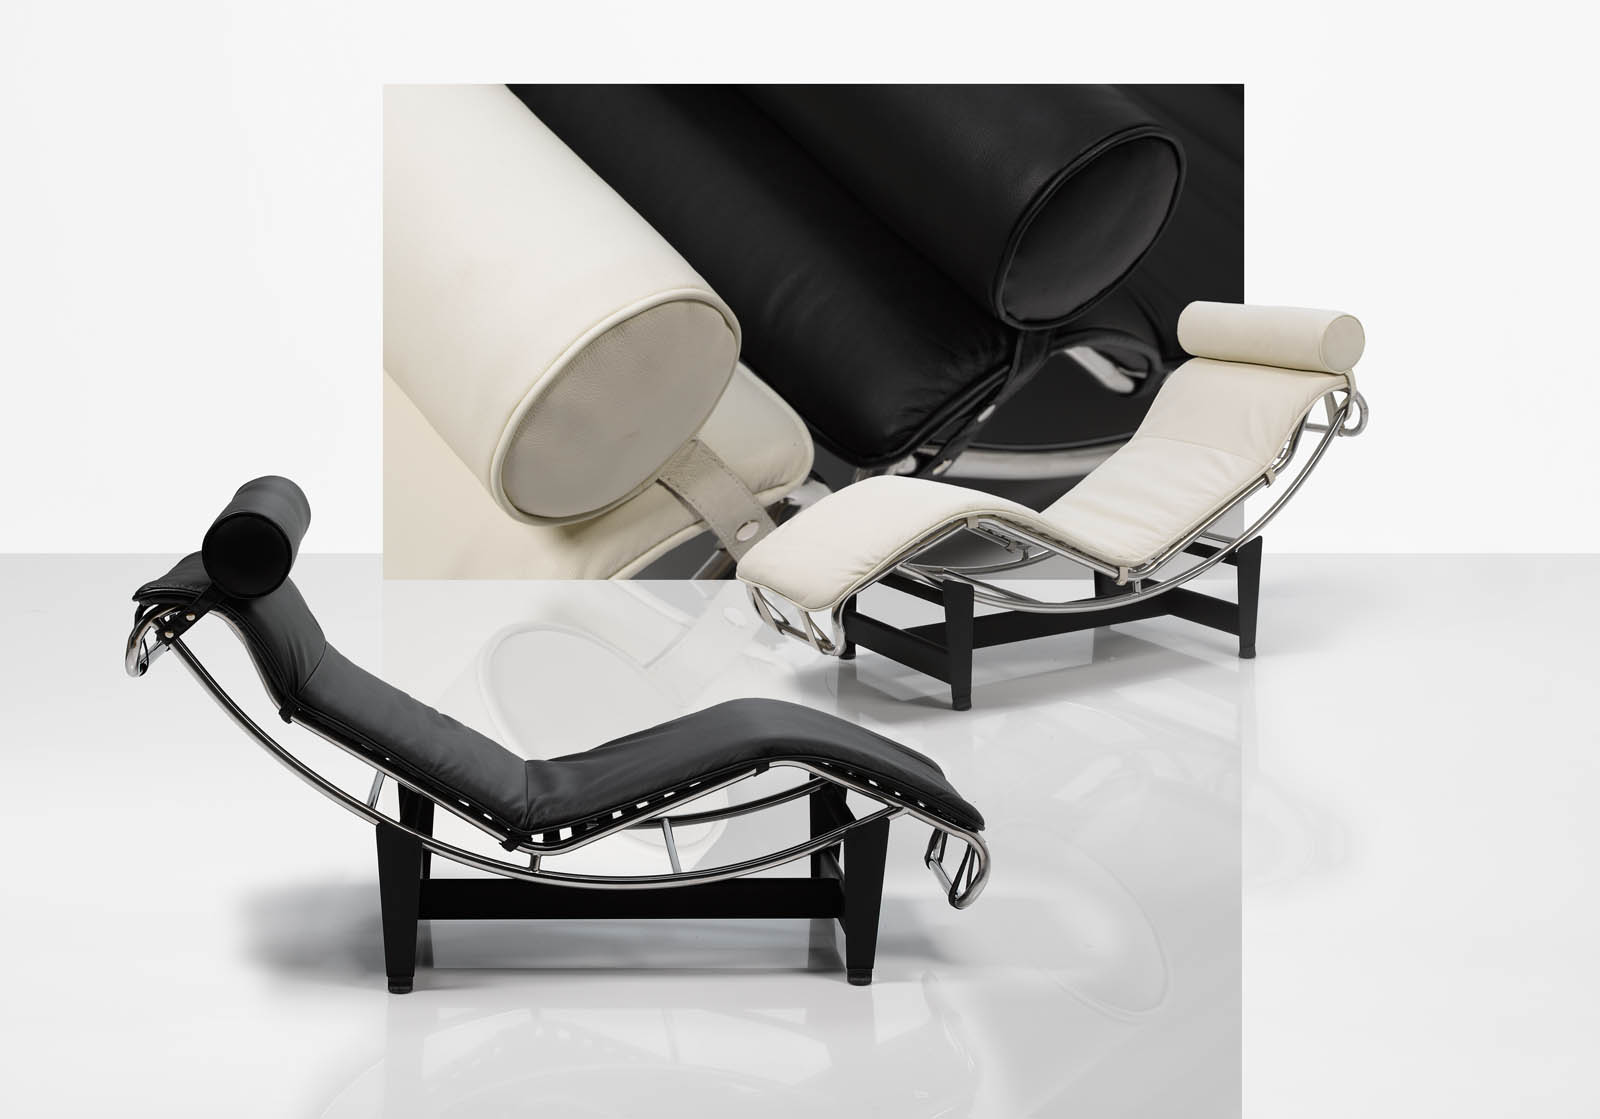 fauteuil le corbusier chaise longue lc4. Black Bedroom Furniture Sets. Home Design Ideas